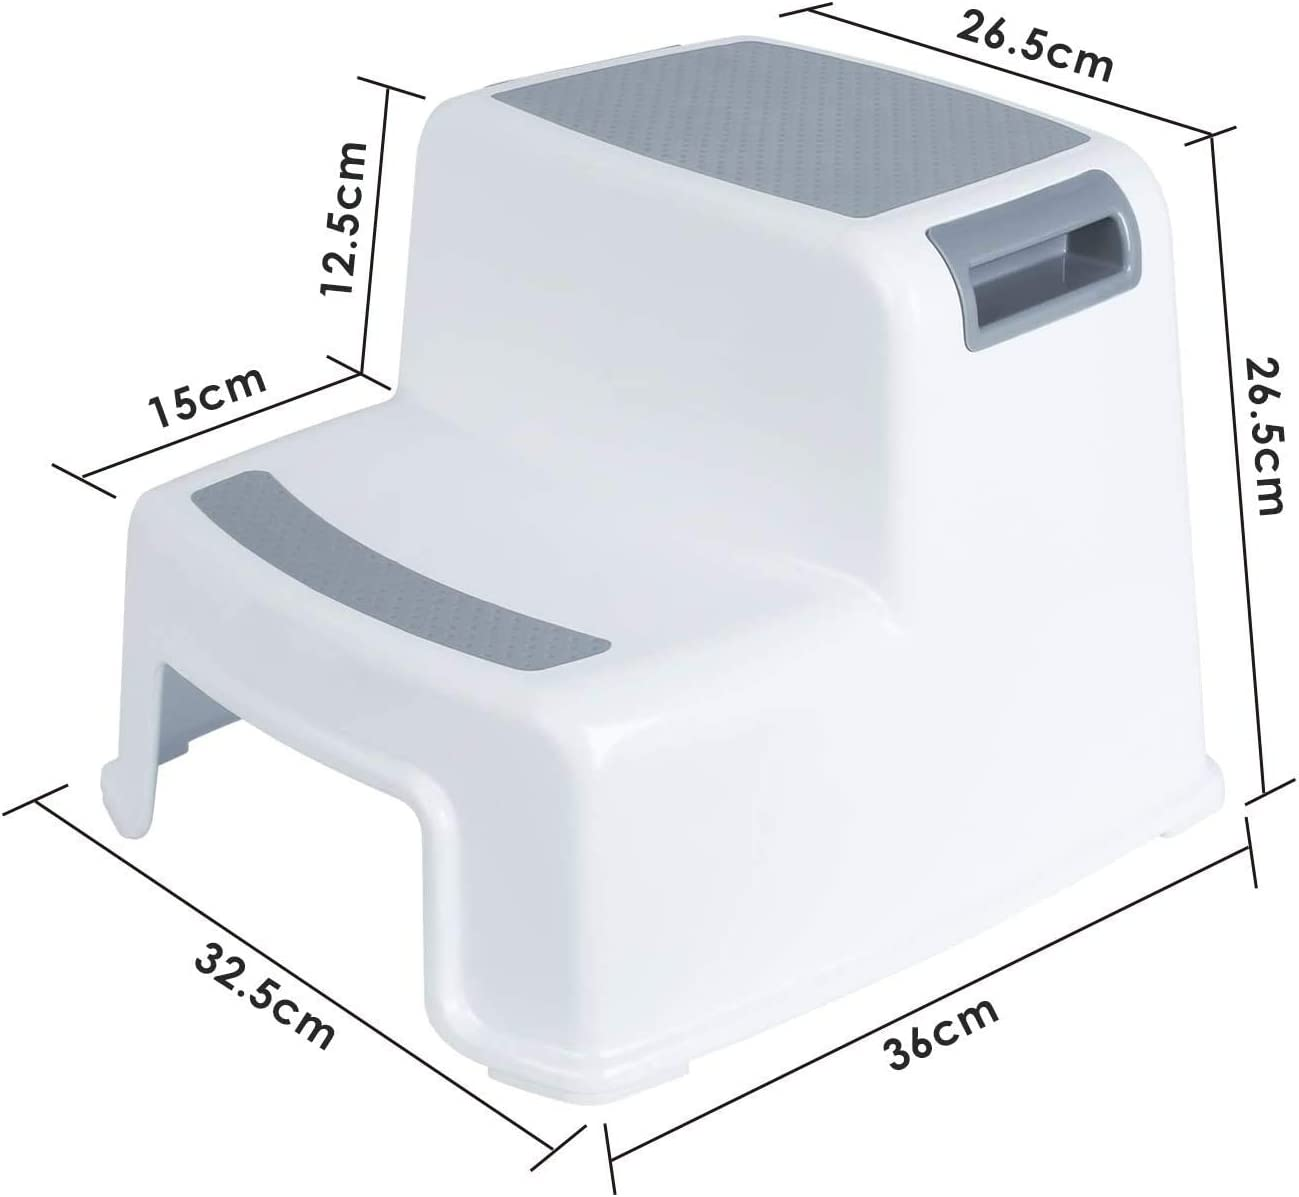 Easy to Clean And Portable Sturdy Kids Double Step Stool Kids Non-Slip Stool for Potty Training And Kitchen And Bathroom Use Rainberg Kids 2 Step Stool